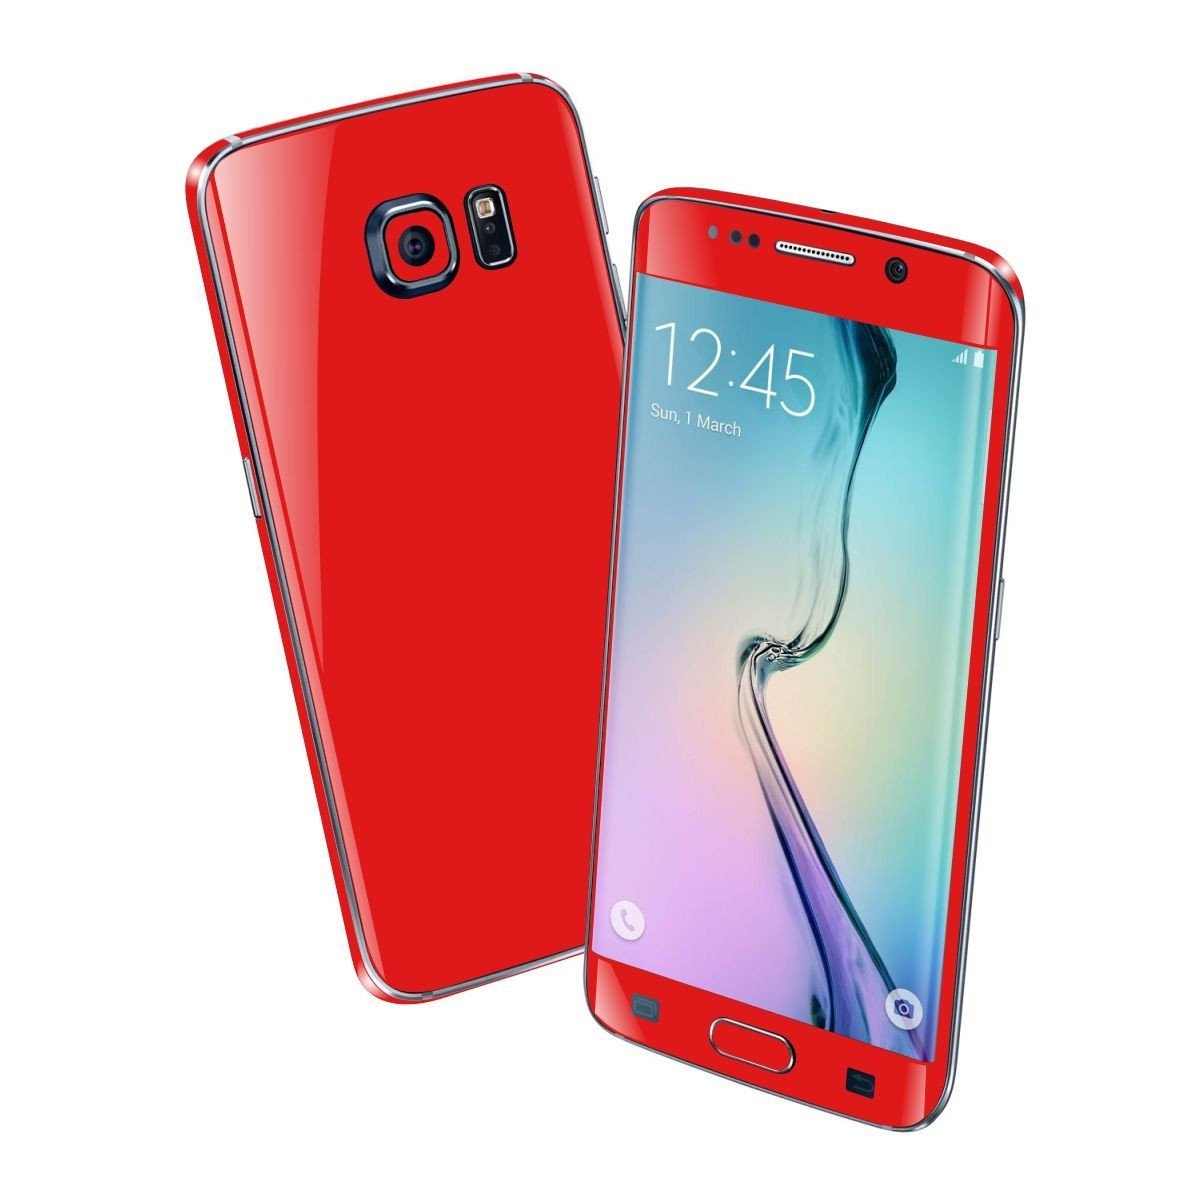 Samsung Galaxy S6 EDGE Colorful GLOSS GLOSSY Bright Red Skin Wrap Sticker Cover Protector Decal by EasySkinz